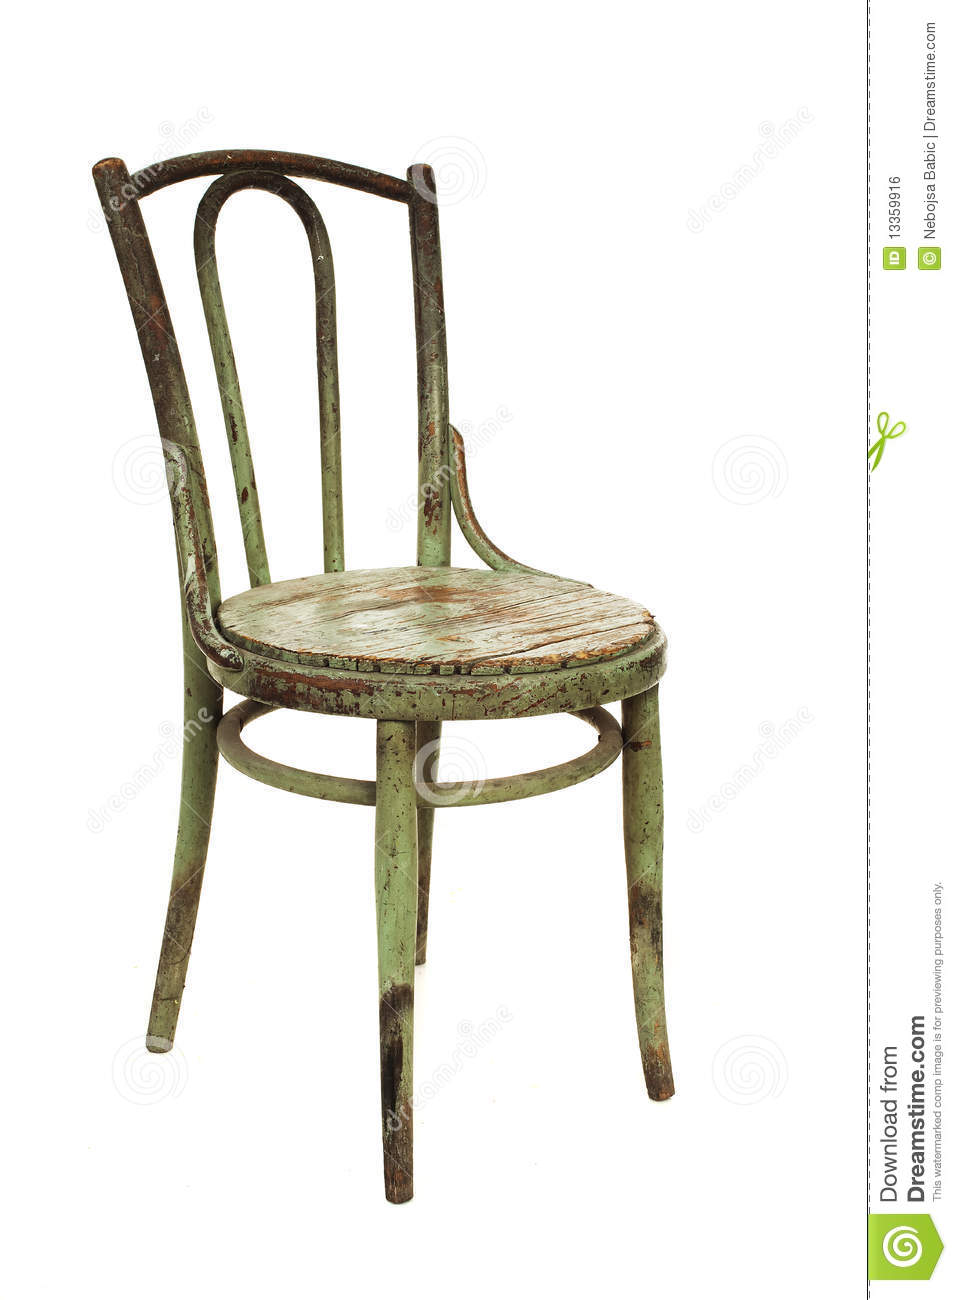 Old wooden chair royalty free stock image image 13359916